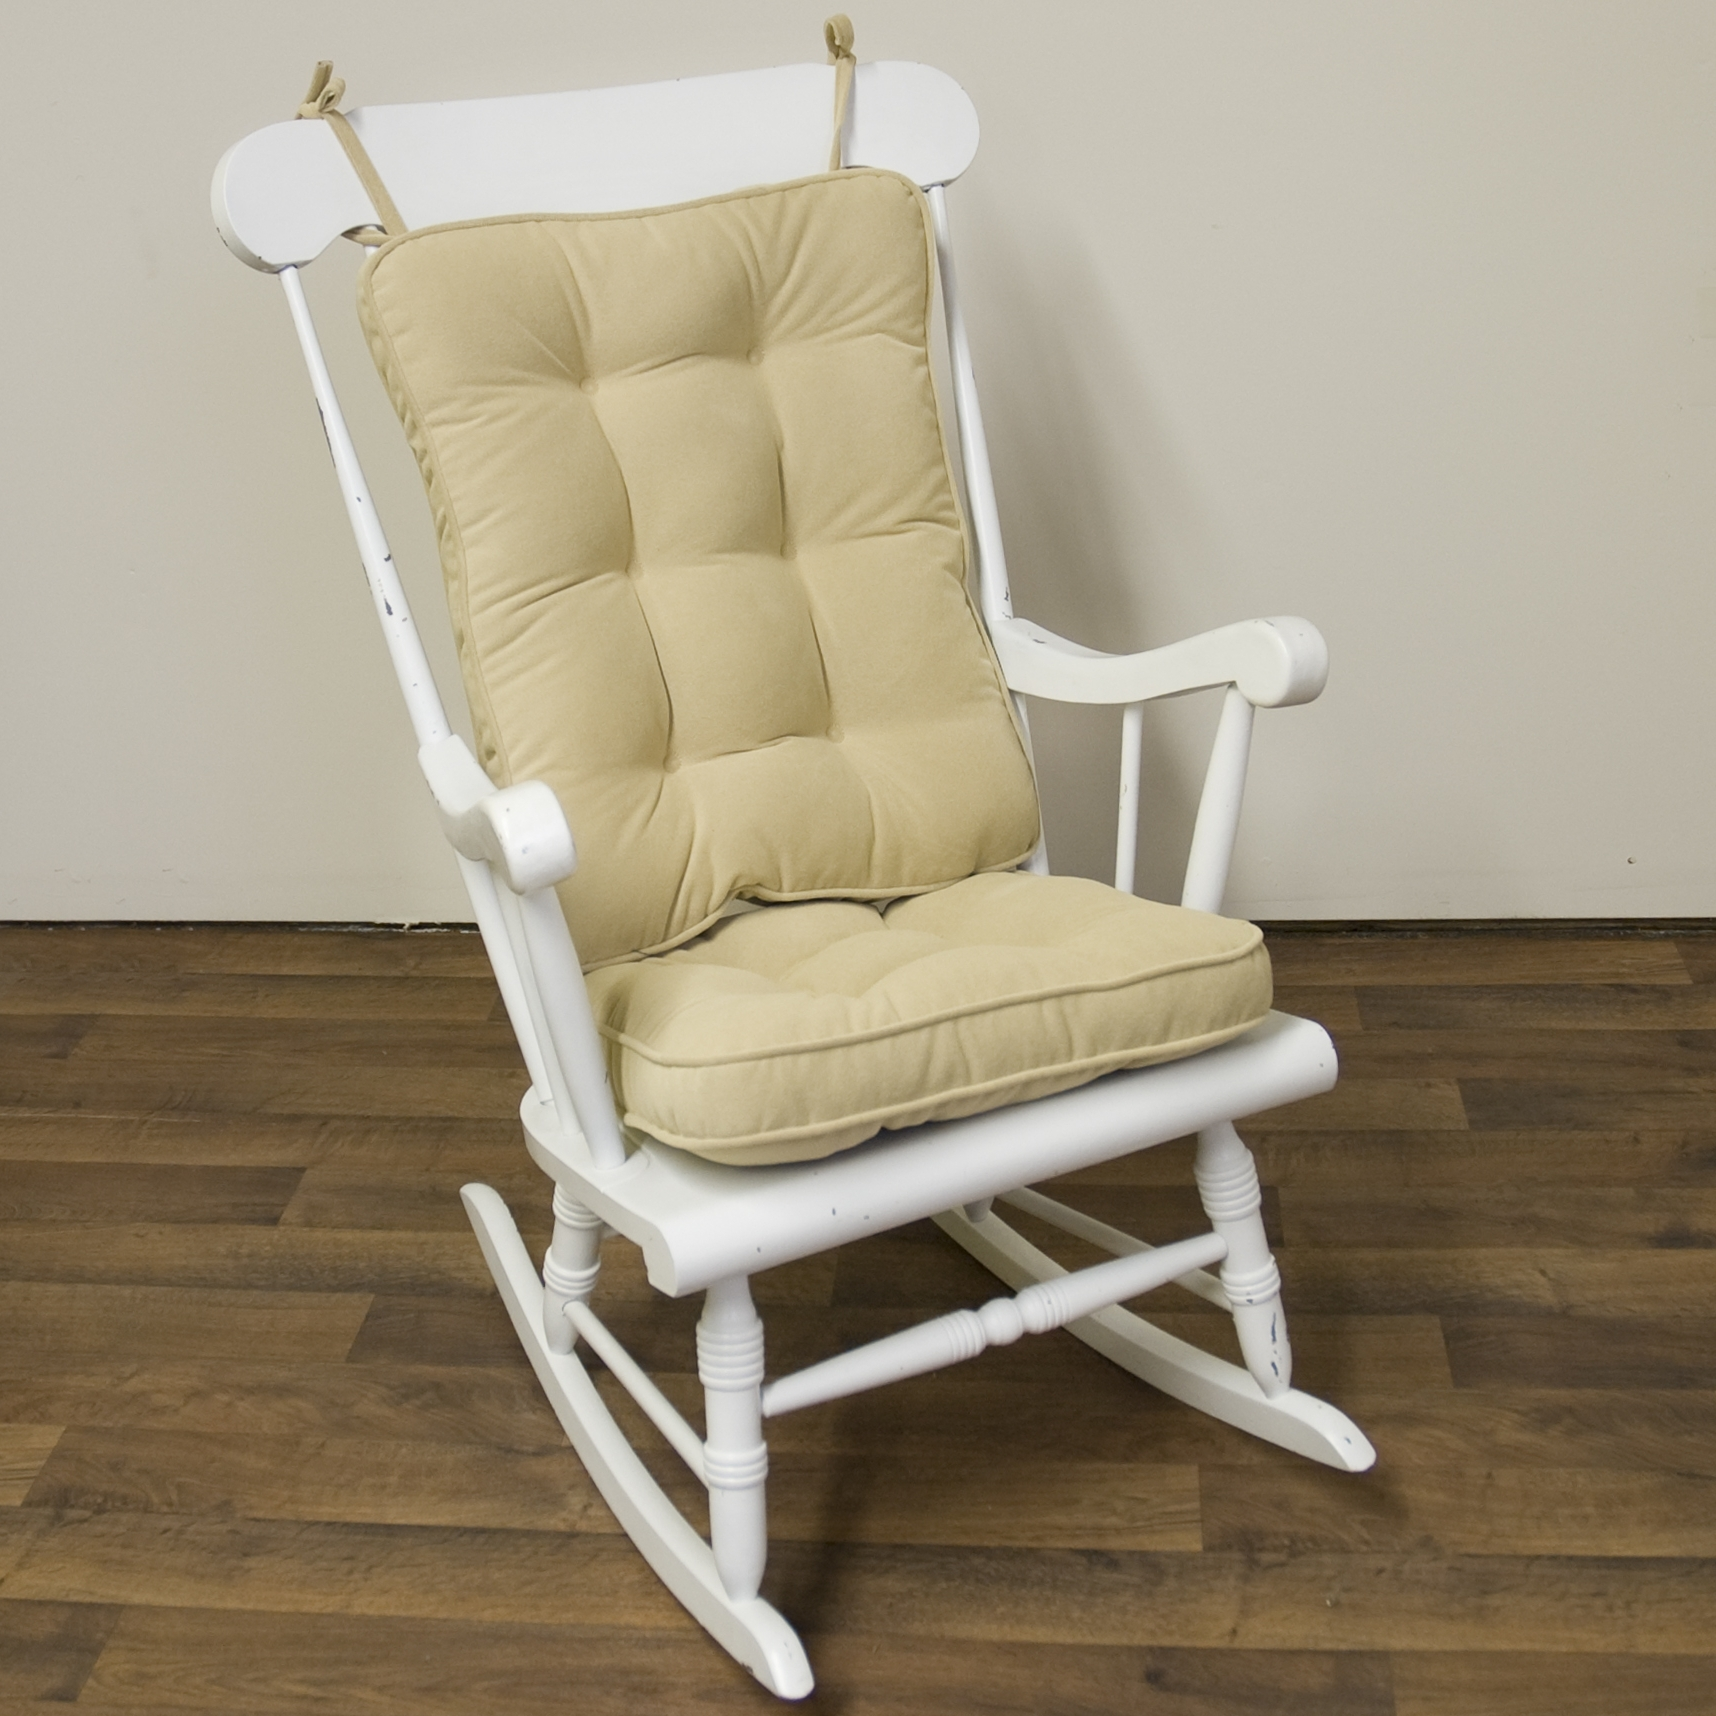 Lowes Rocking Chairs In Recent Livingroom : Lowes White Wooden Rocking Chairs Outdoor Wood Chair (View 7 of 20)